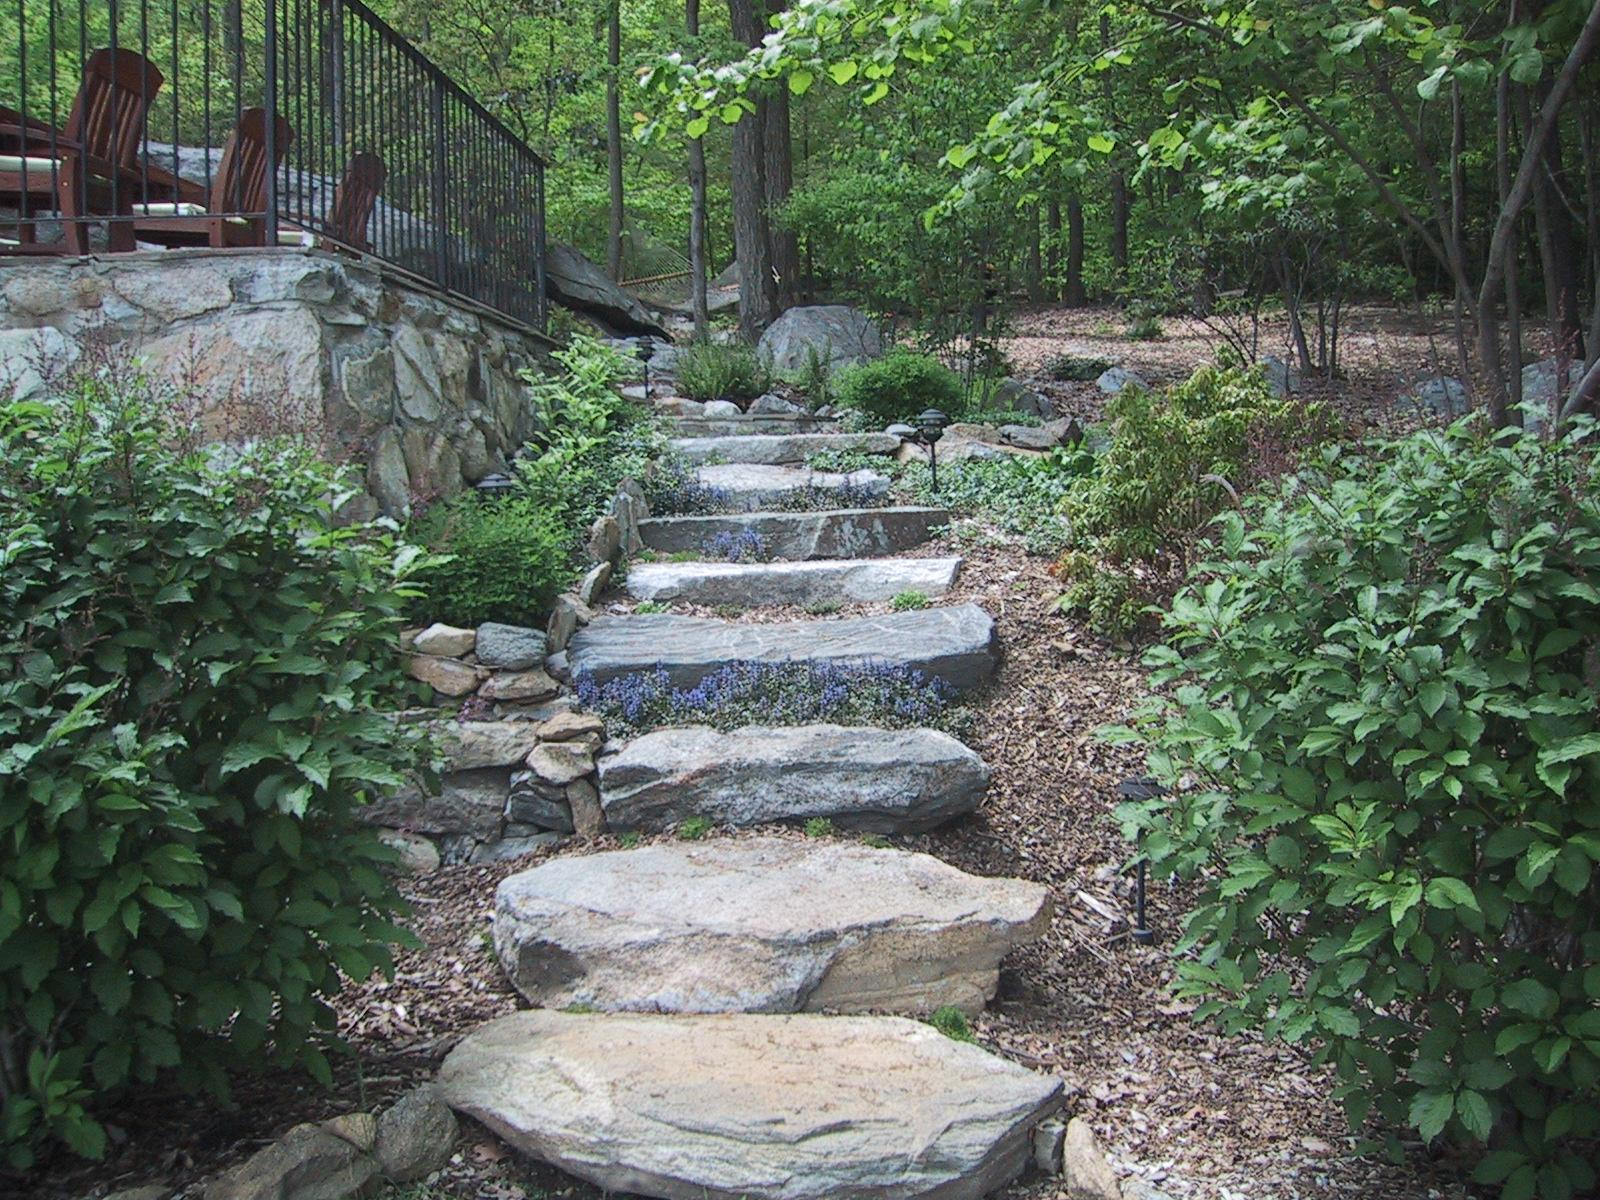 These large stone steps add a natural feel in their woodland setting. They connect the upper outdoor living space to lower lakeside access in a seamless, harmonious way, and are softened by the flower